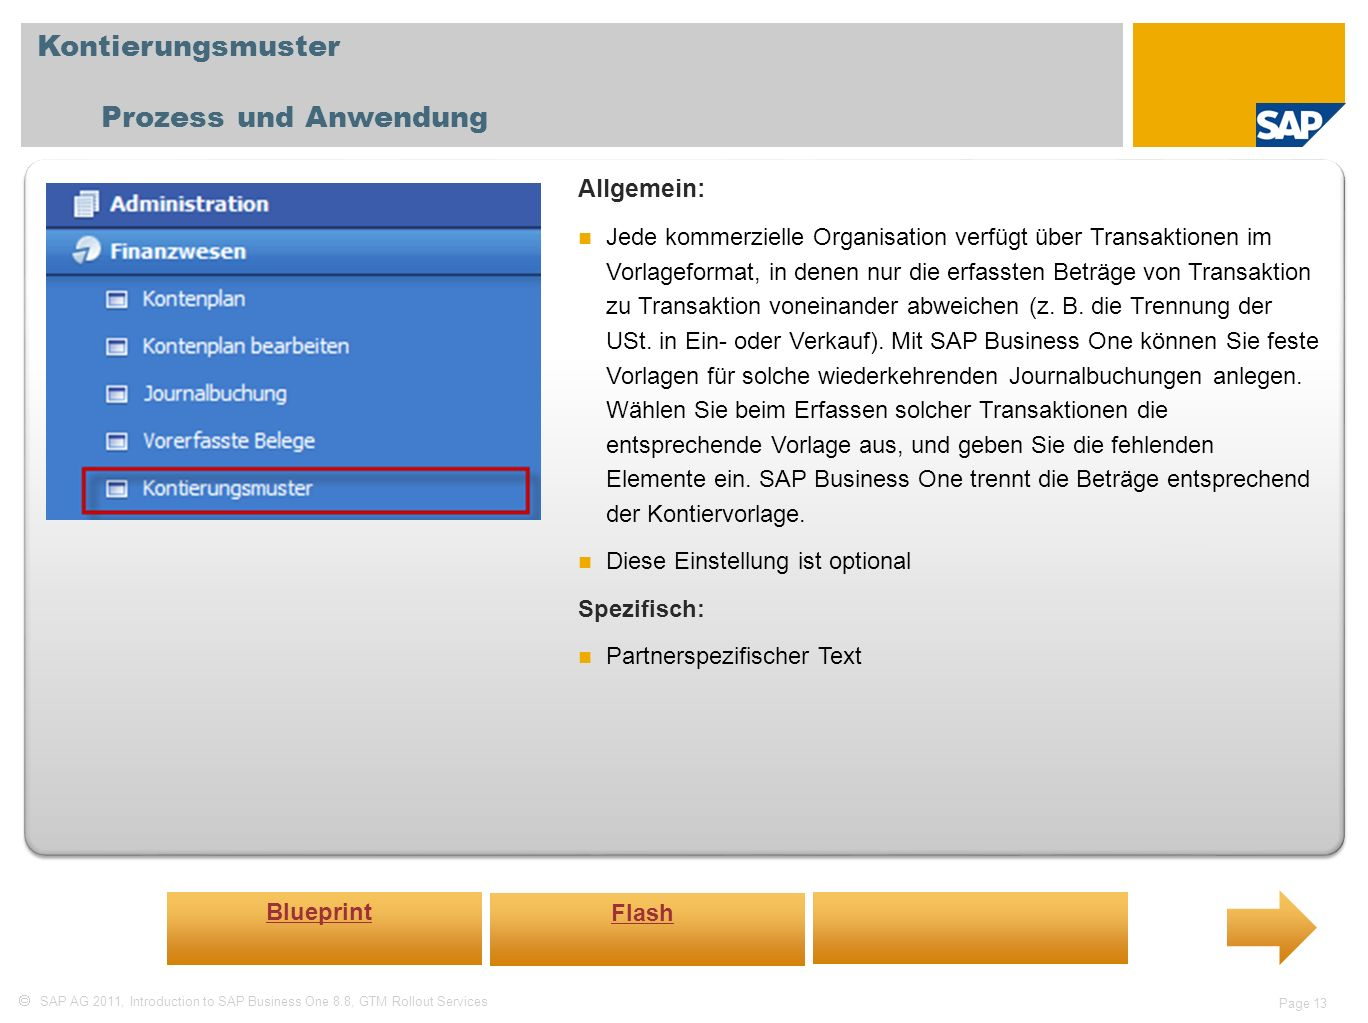 SAP AG 2011, Introduction to SAP Business One 8.8, GTM Rollout Services Page 13 Kontierungsmuster Prozess und Anwendung Allgemein: Jede kommerzielle O